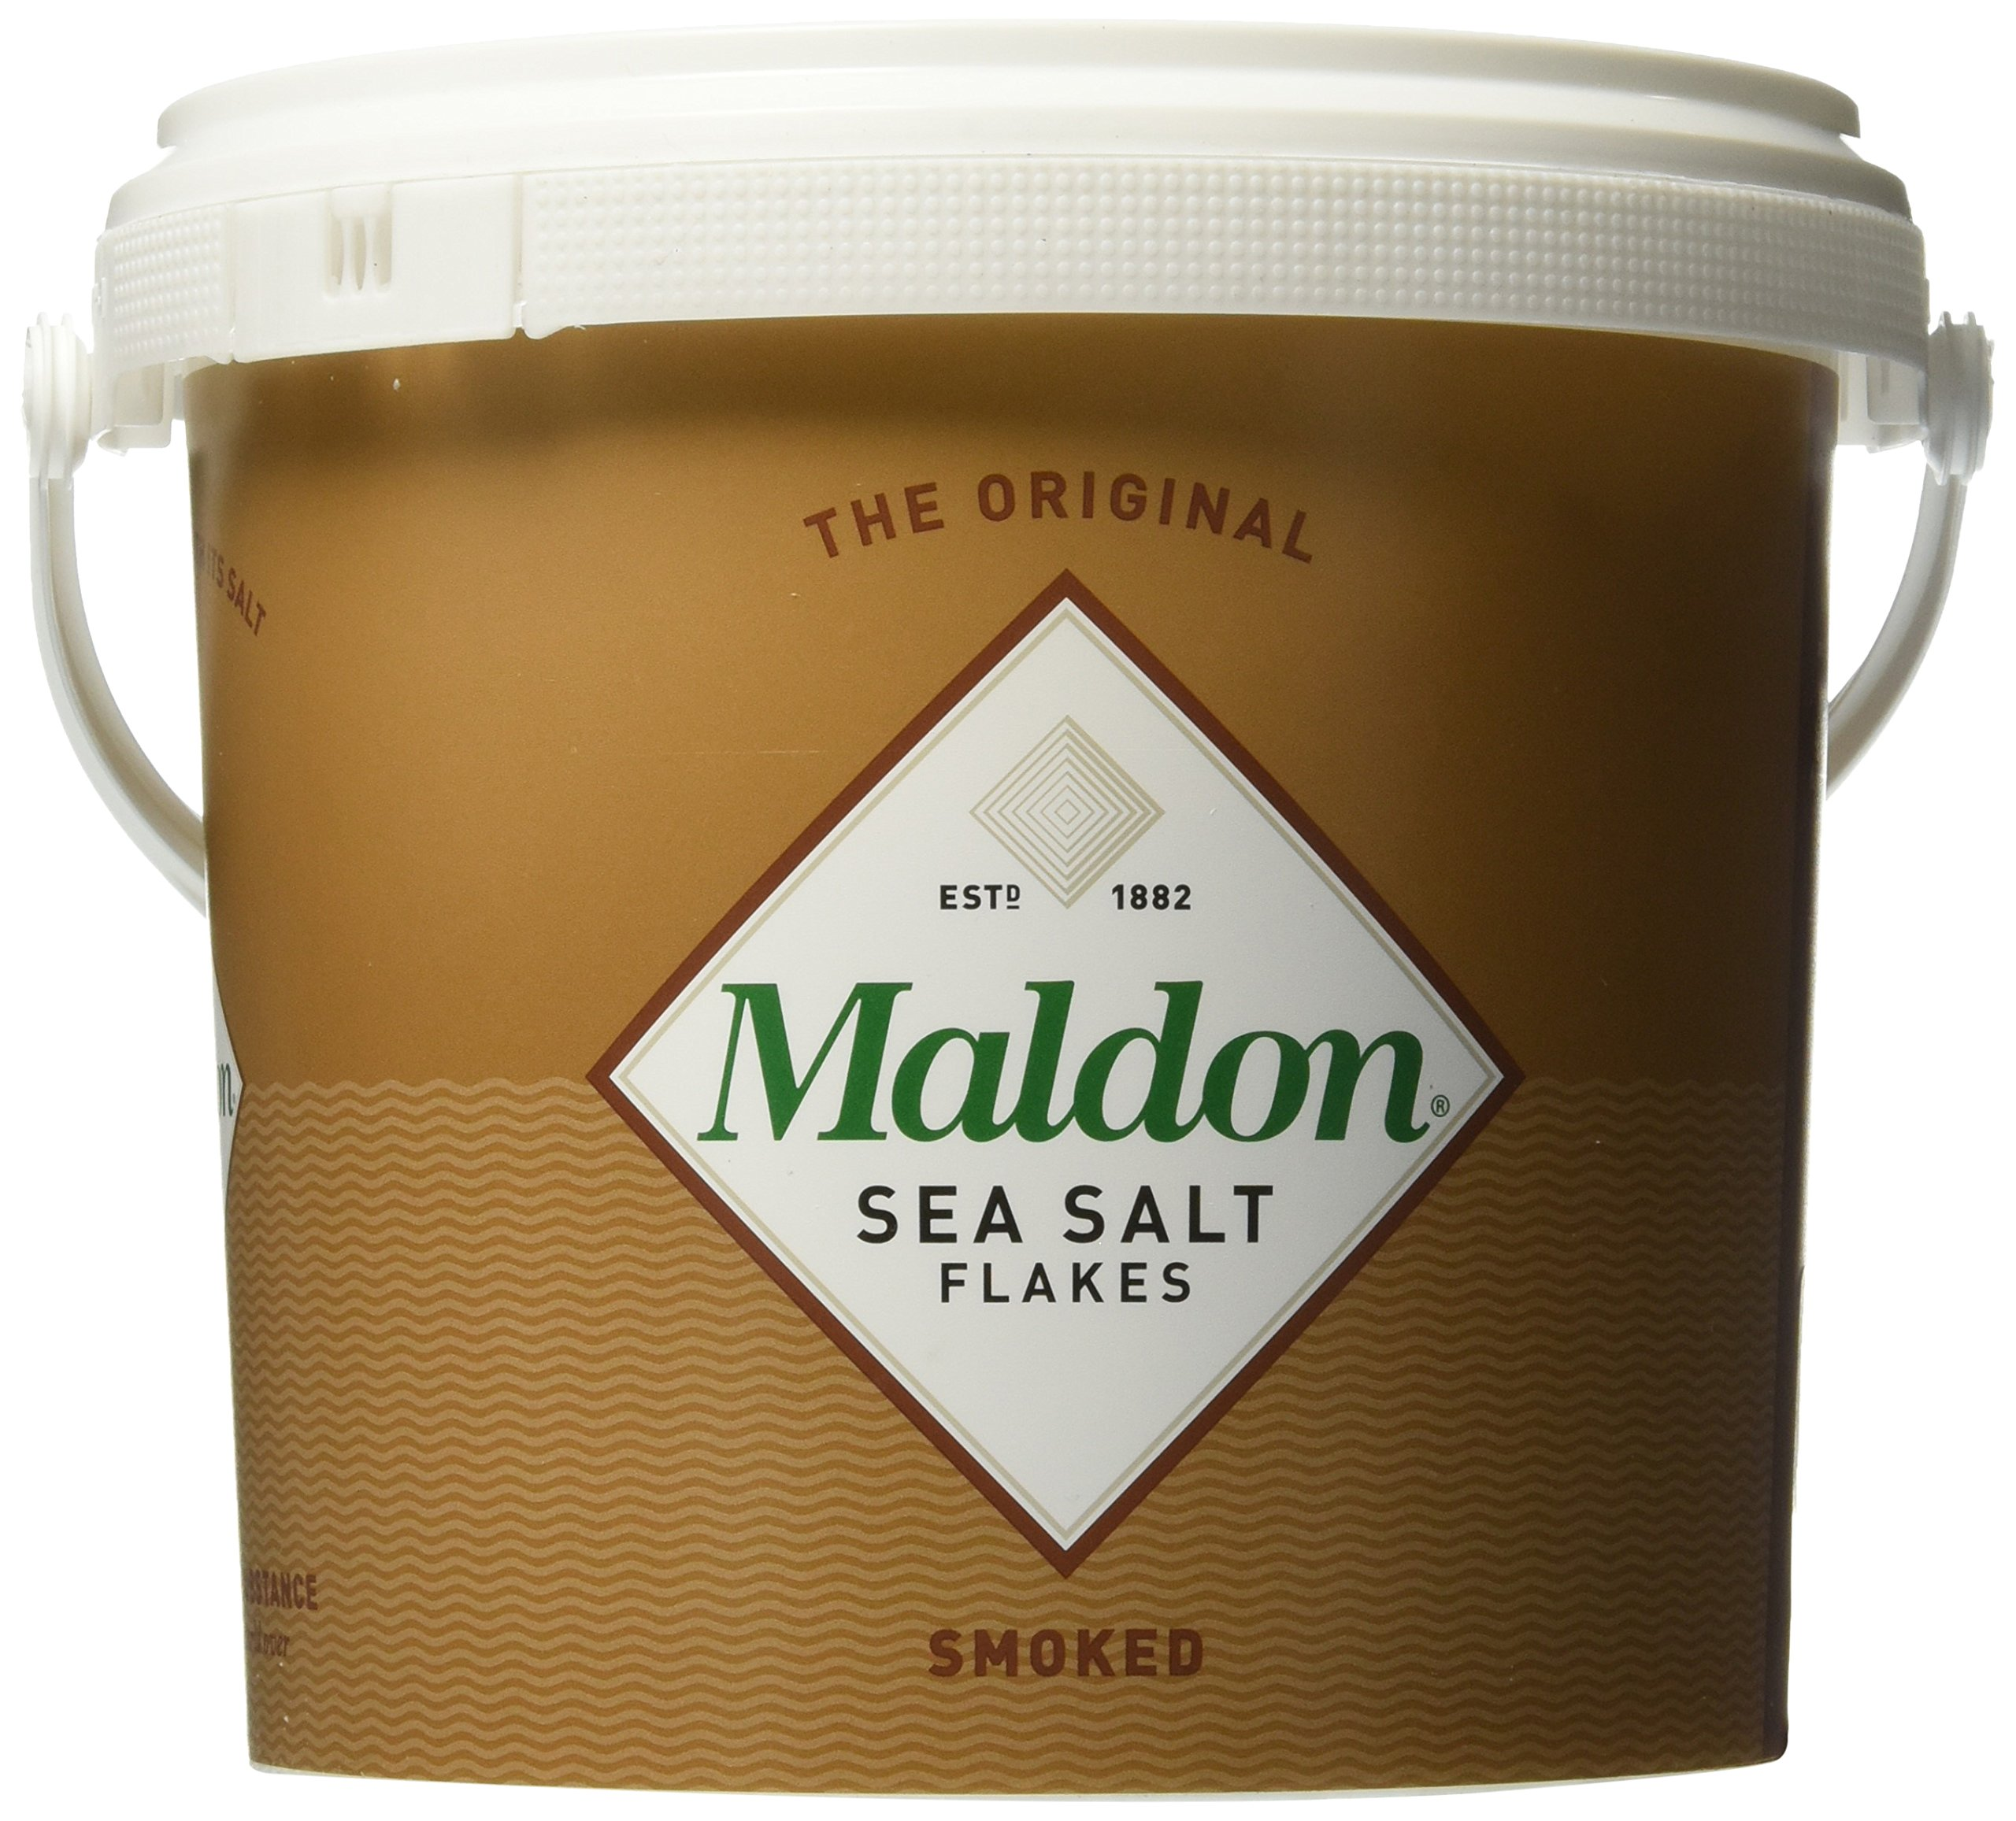 Maldon Smoked Sea Salt, 3.3 lb Tub